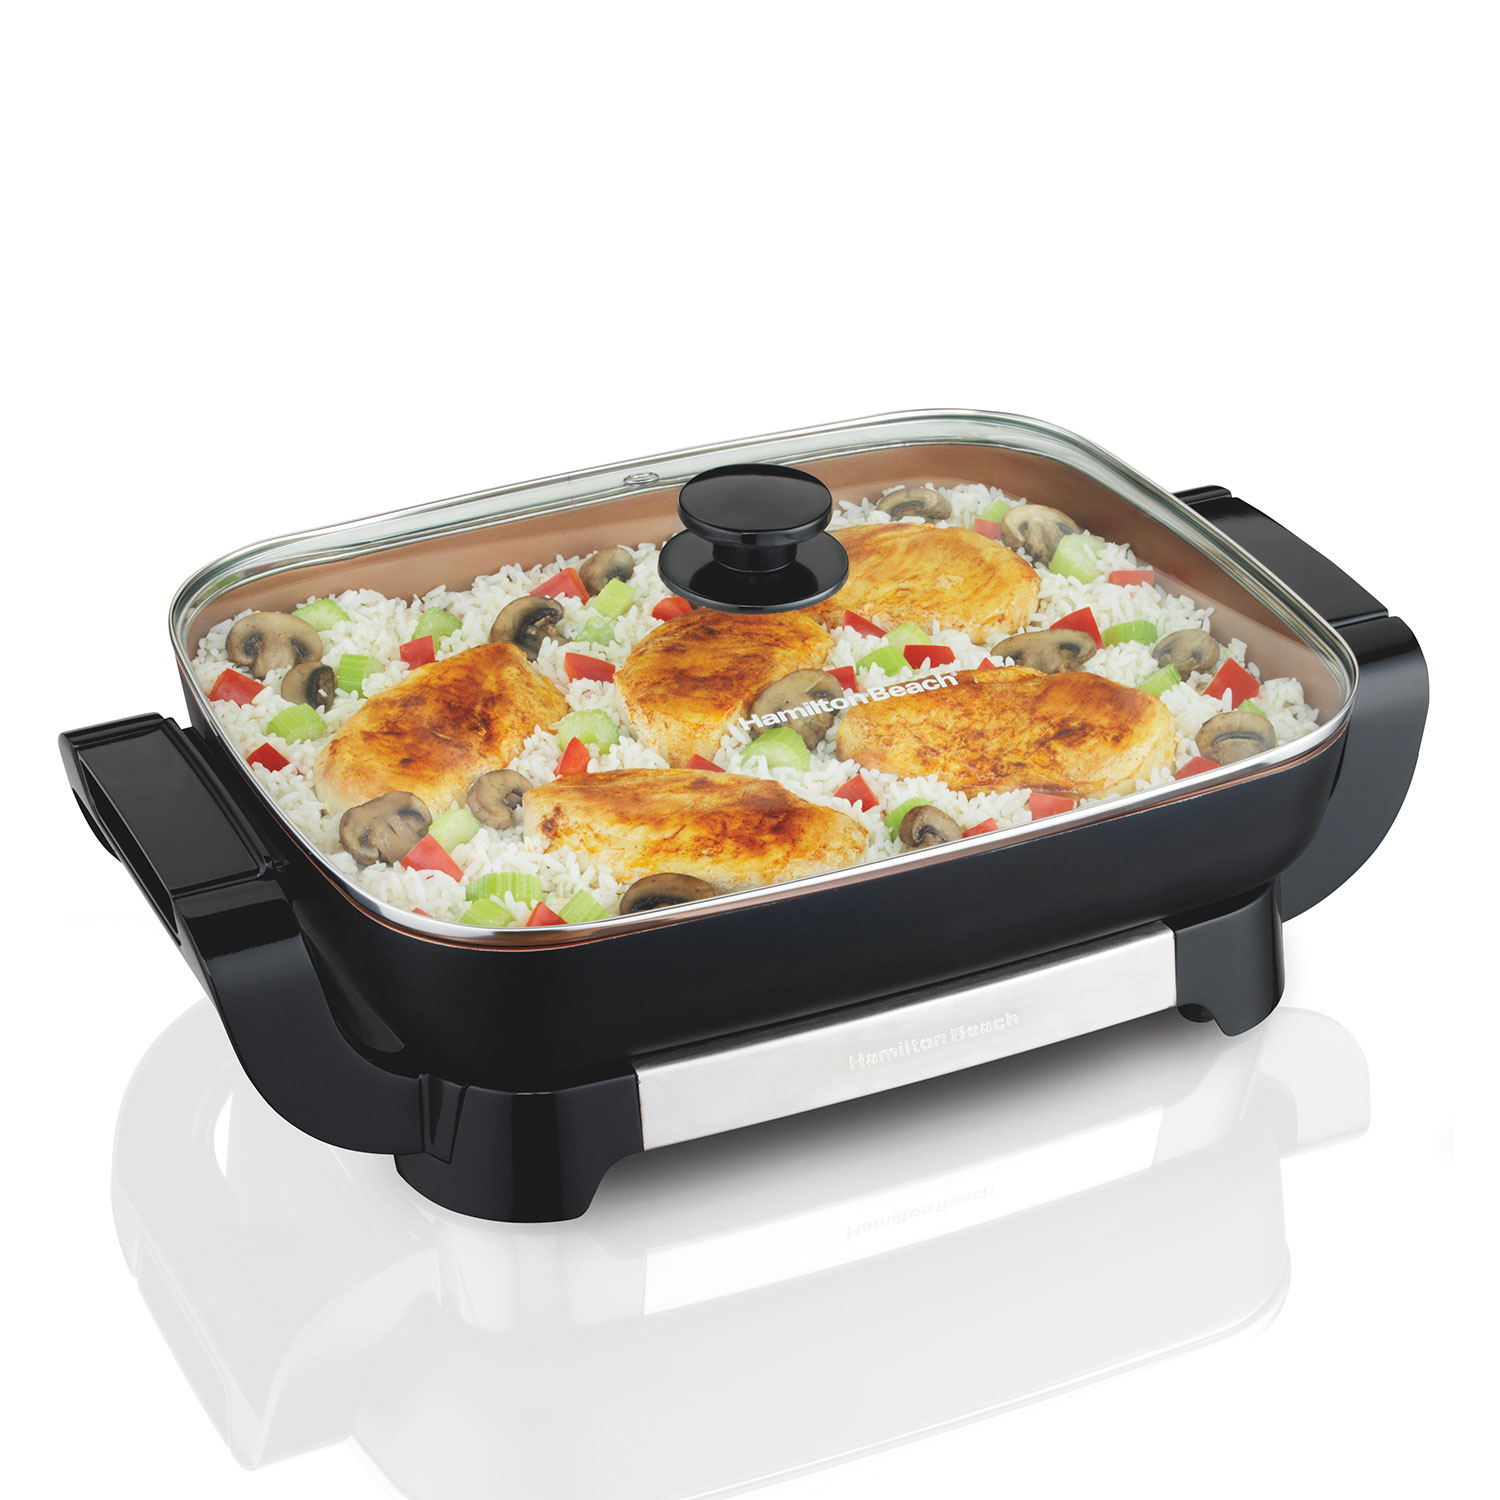 Durathon® Ceramic Skillet with Removable Pan (38529)